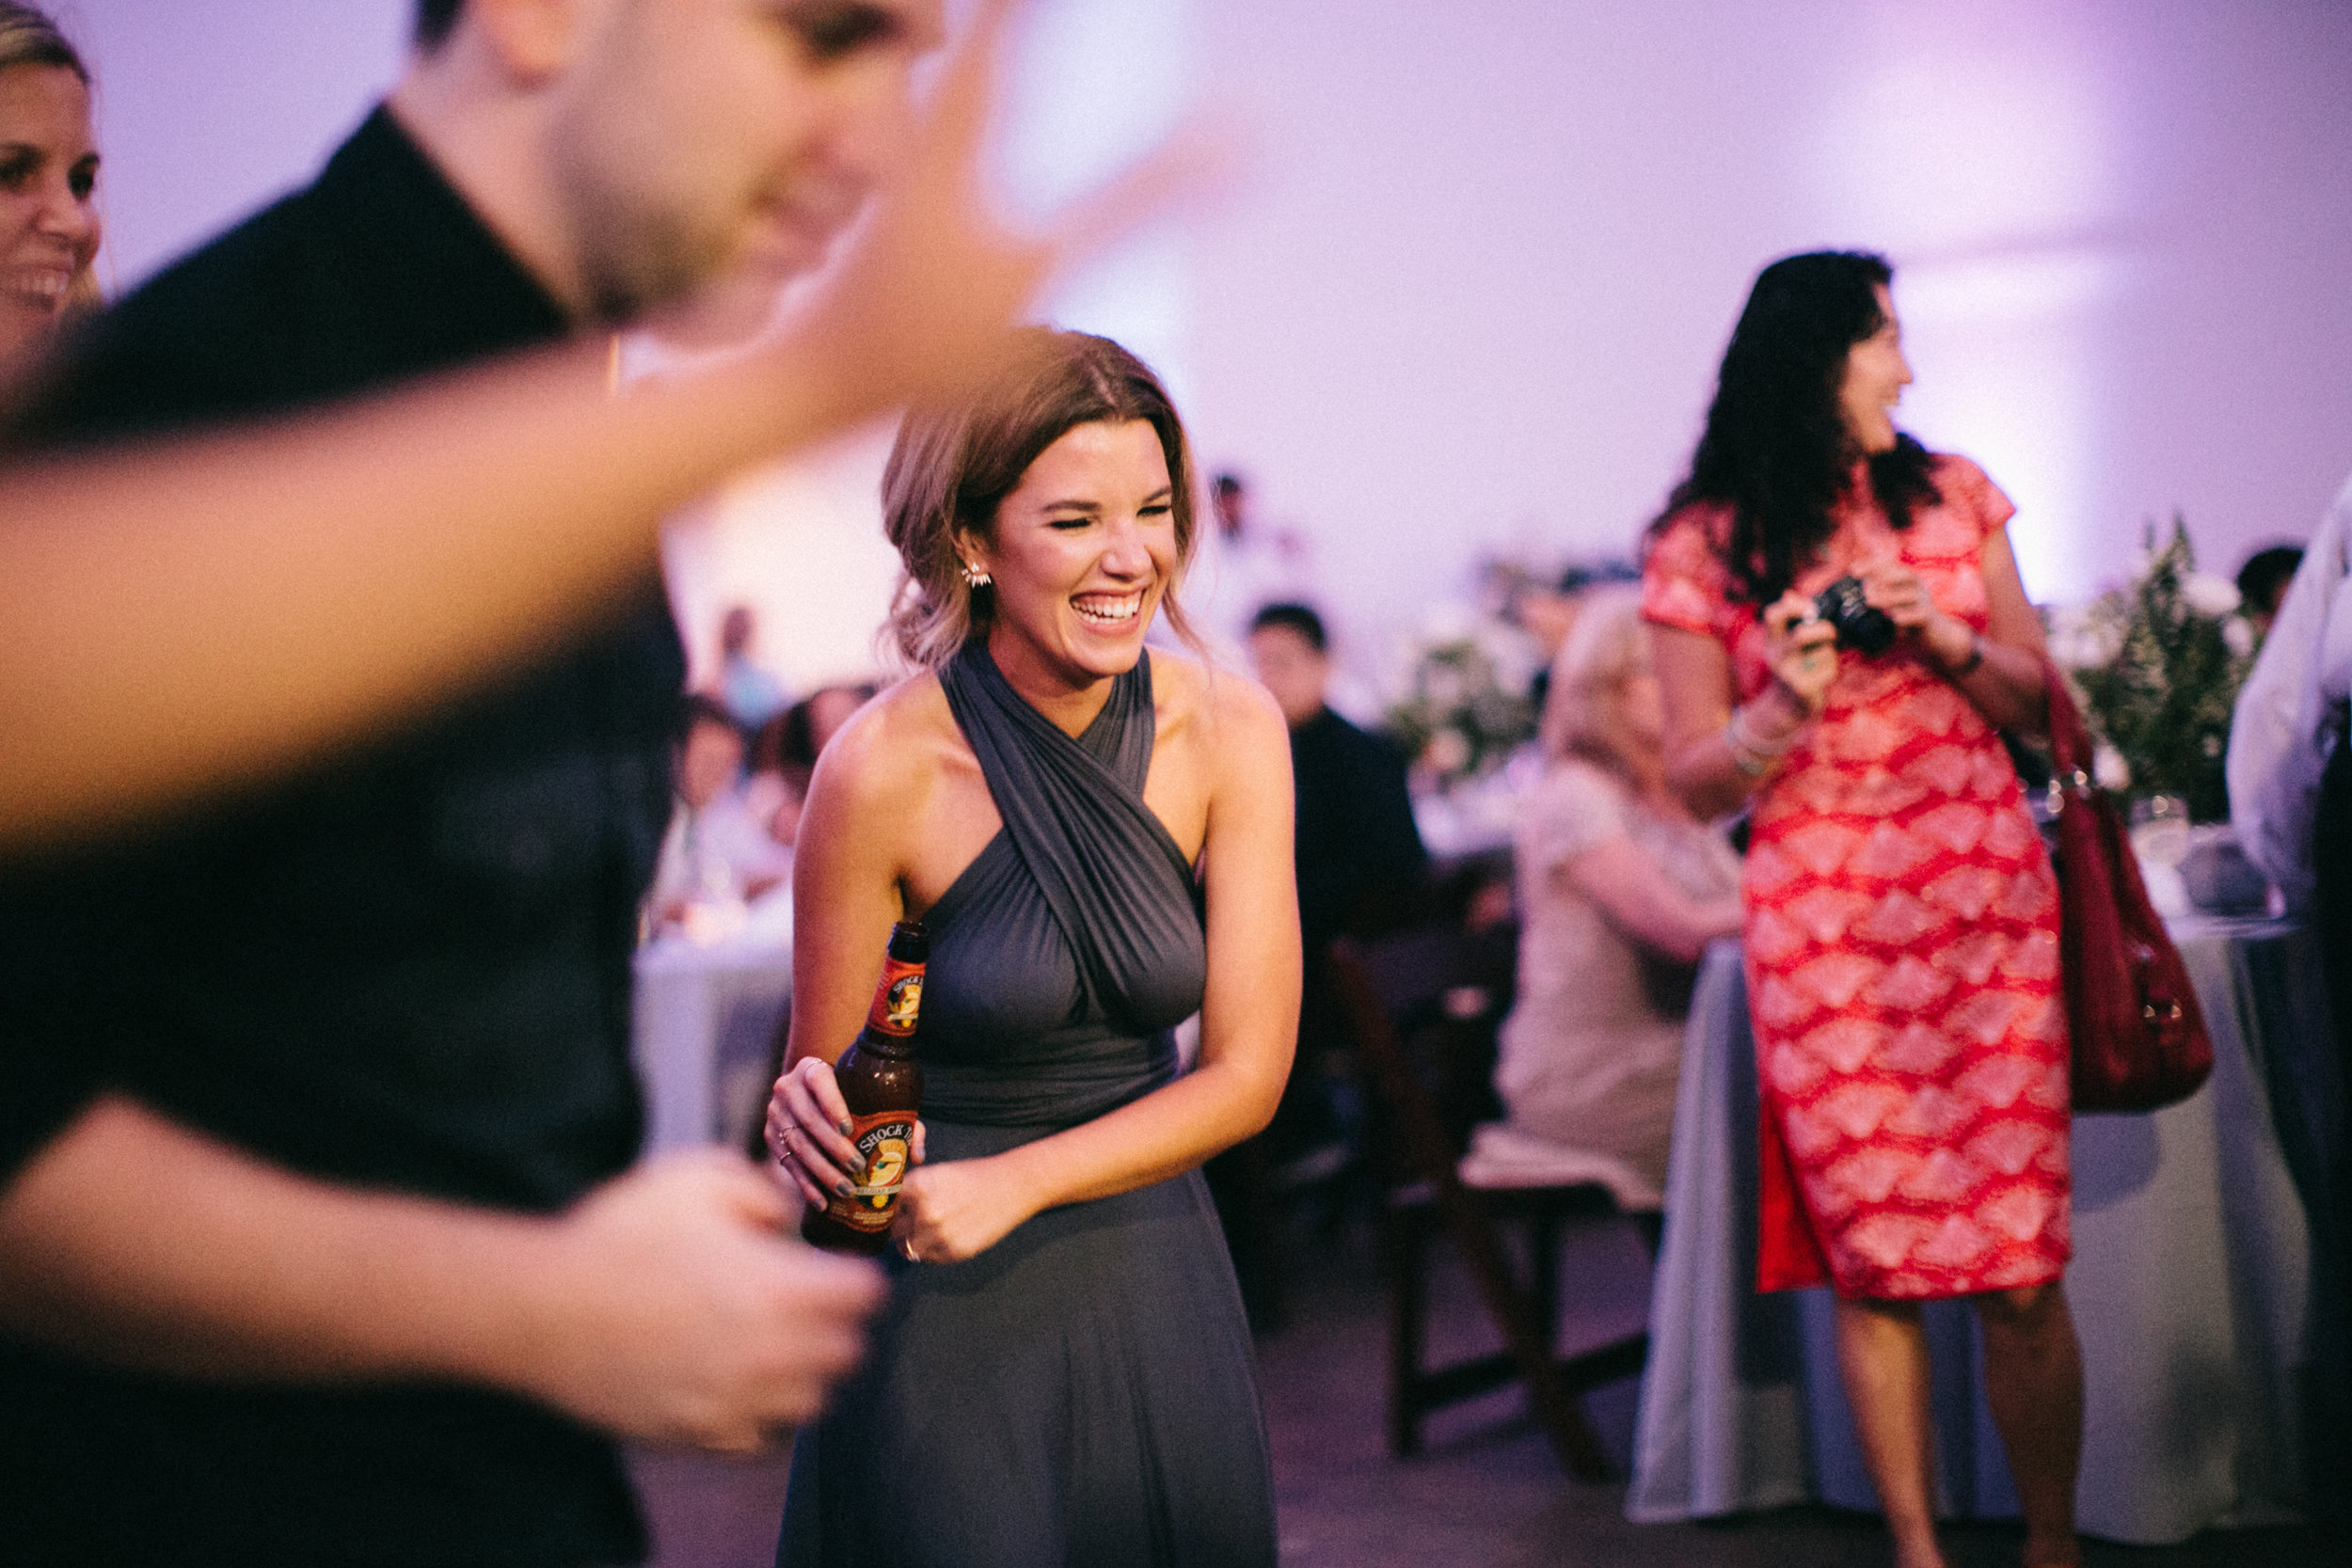 Tampa Industrial wedding at the Rialto Theater_192.jpg